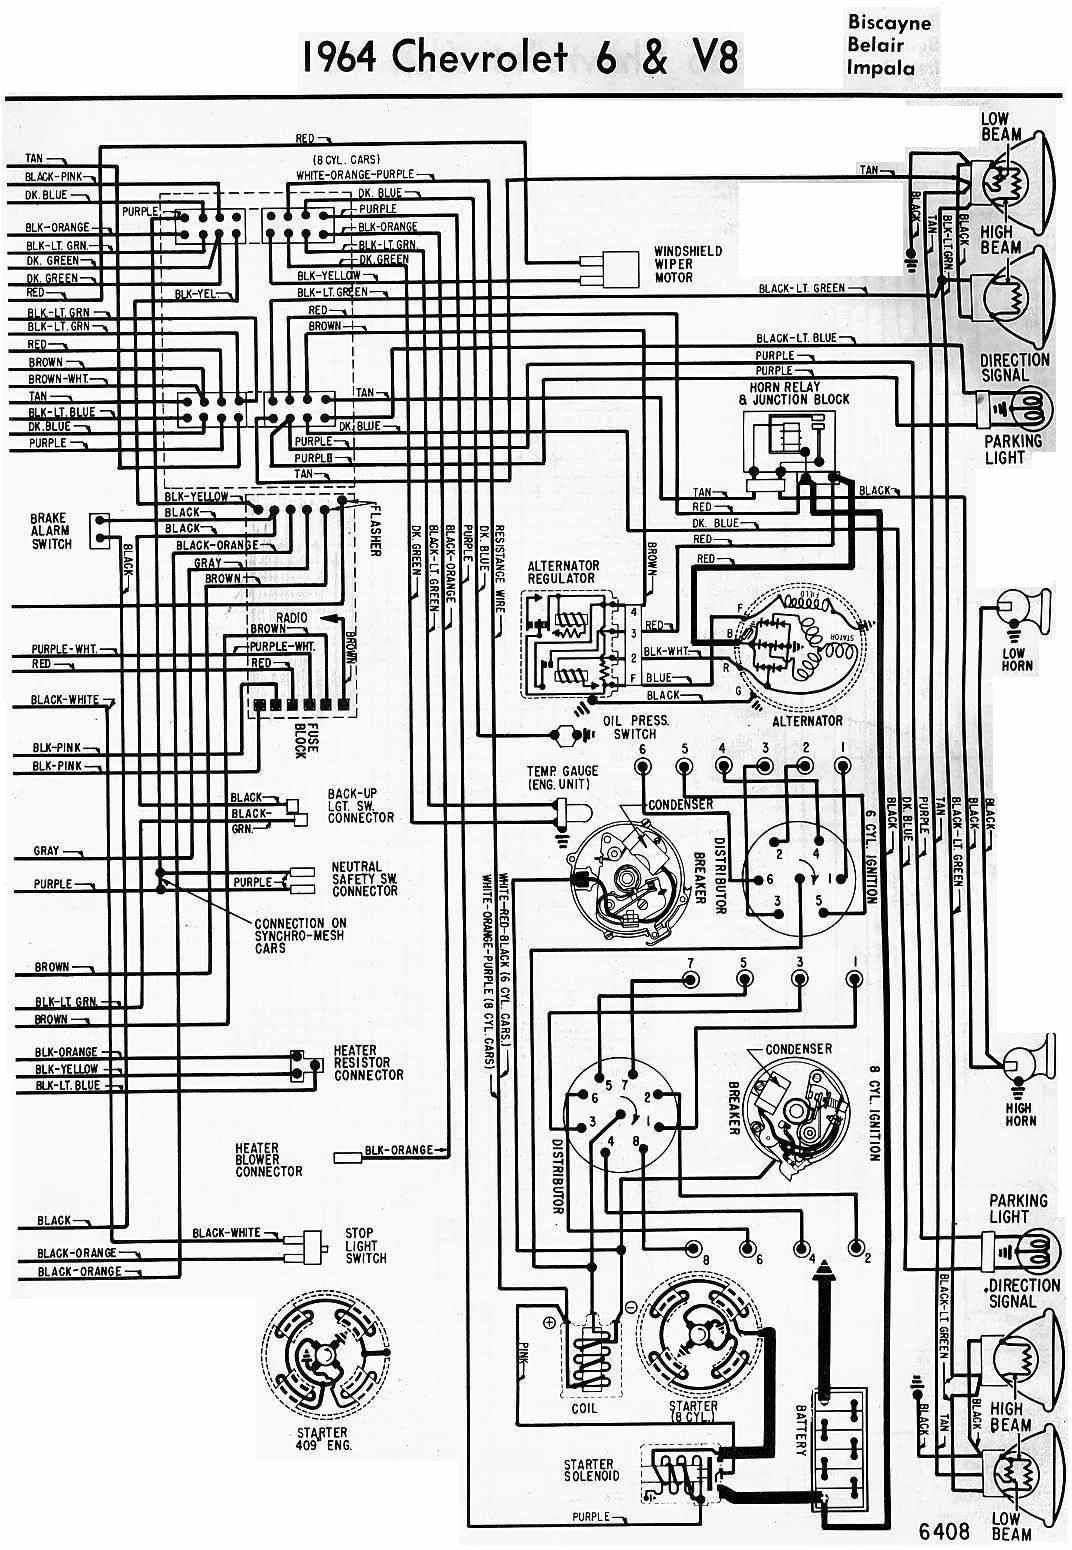 1964 impala ac wiring diagram simple wiring diagrams rh 30 studio011 de 2006 impala wiring diagram 2007 chevy impala ignition wiring diagram [ 1072 x 1550 Pixel ]